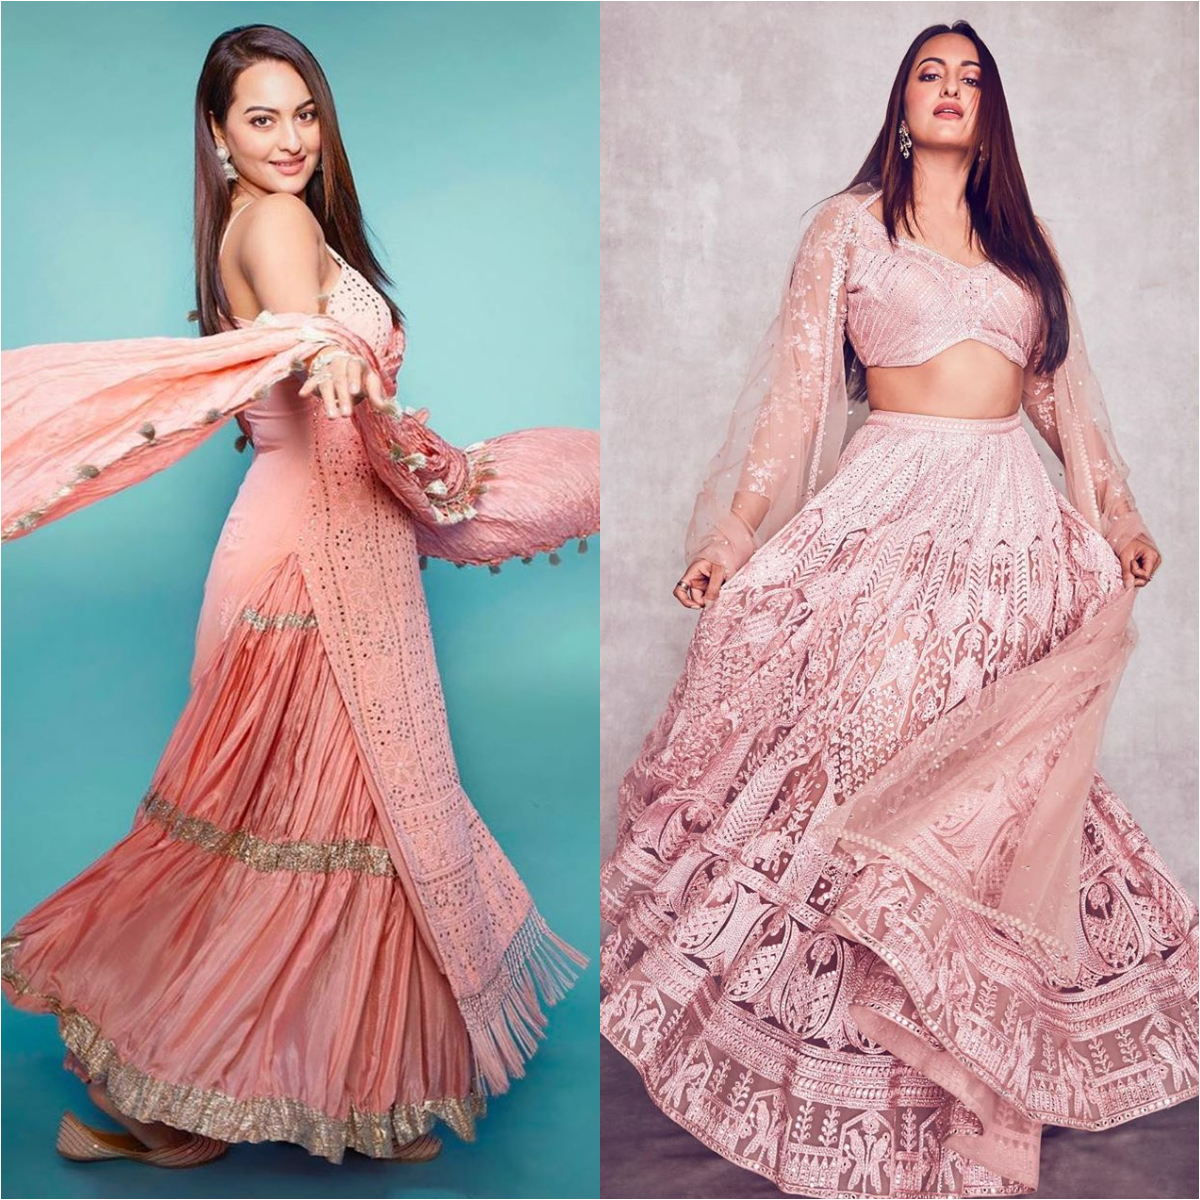 Sonakshi Sinha is 'Feeling Pink' in two gorgeous outfits for Dabangg 3 promotions & we are all for it